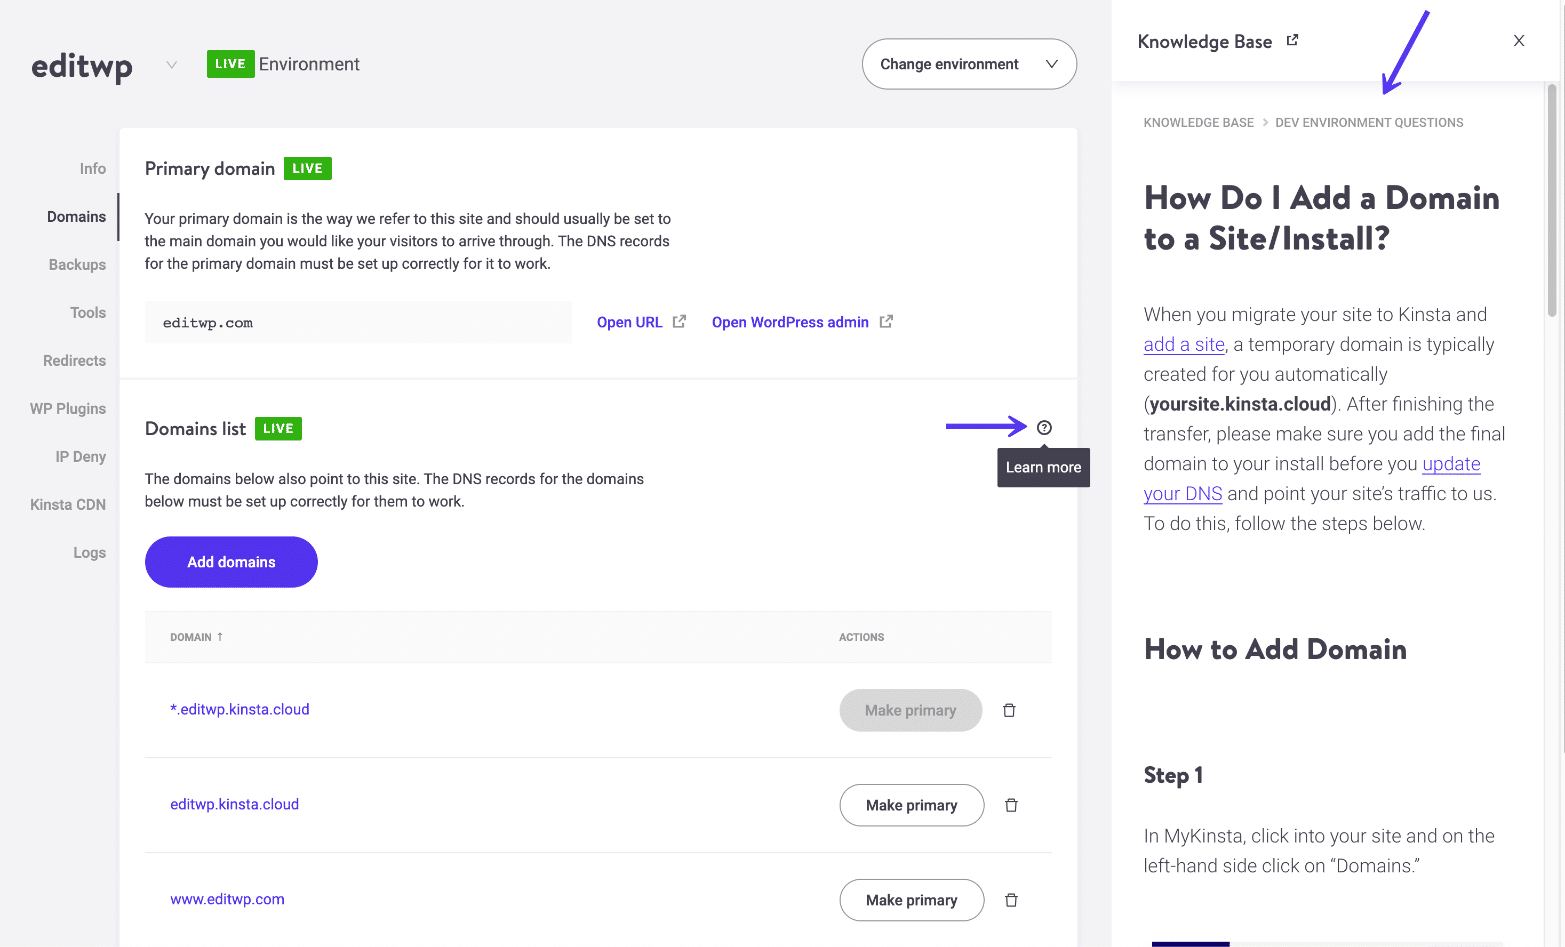 Knowledge Base in MyKinsta